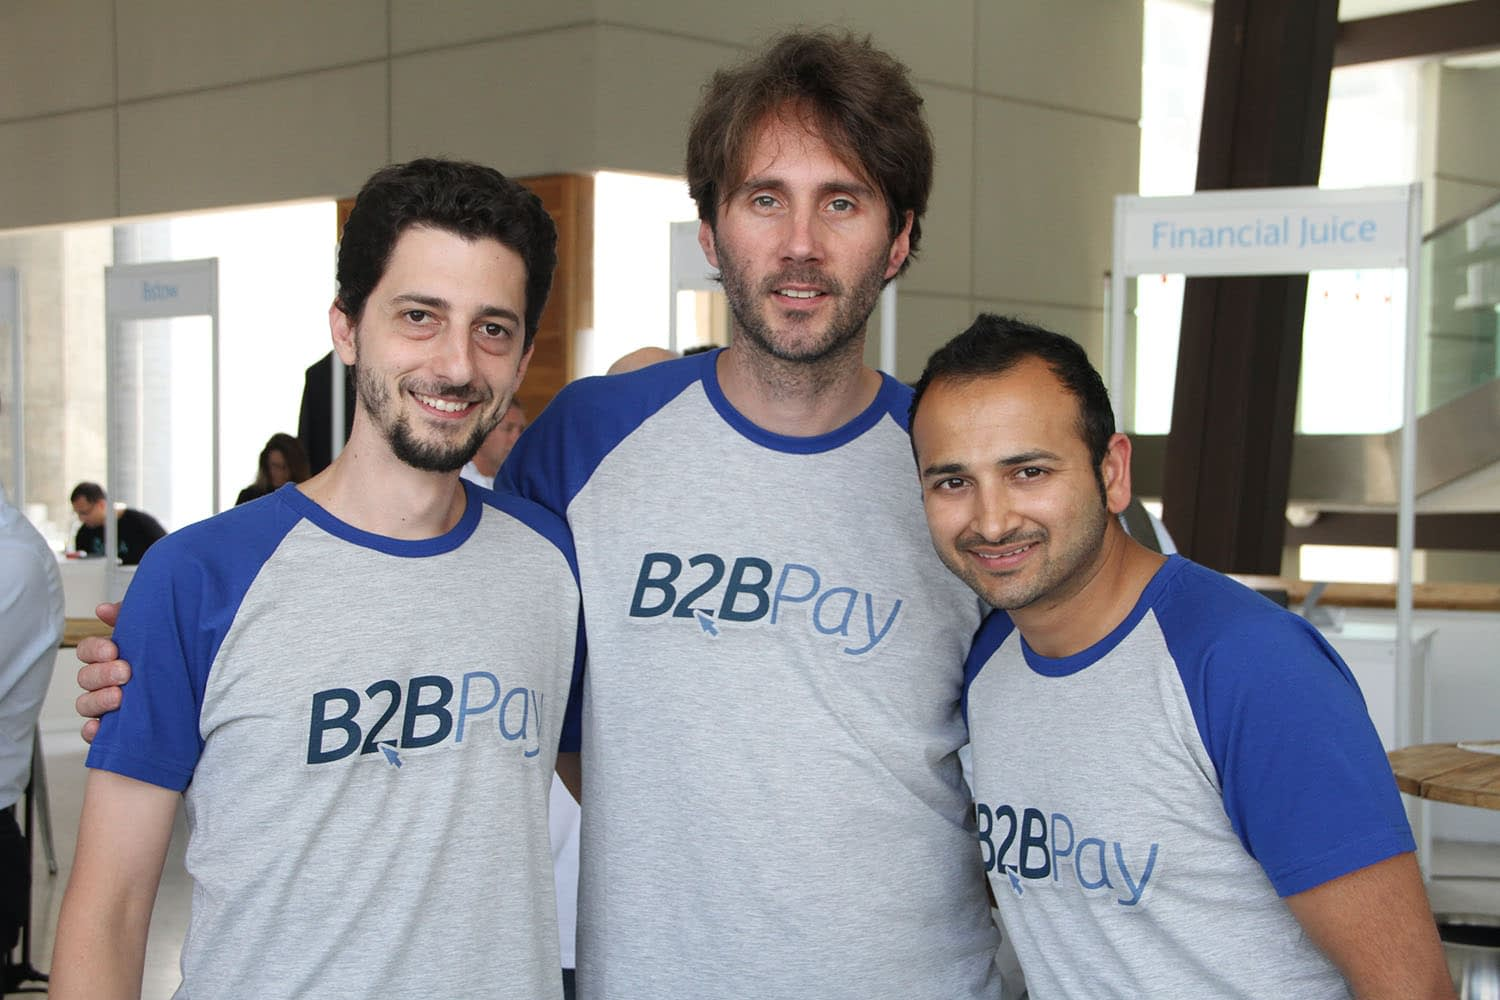 B2B-Pay-Neil-Ambikar.jpg